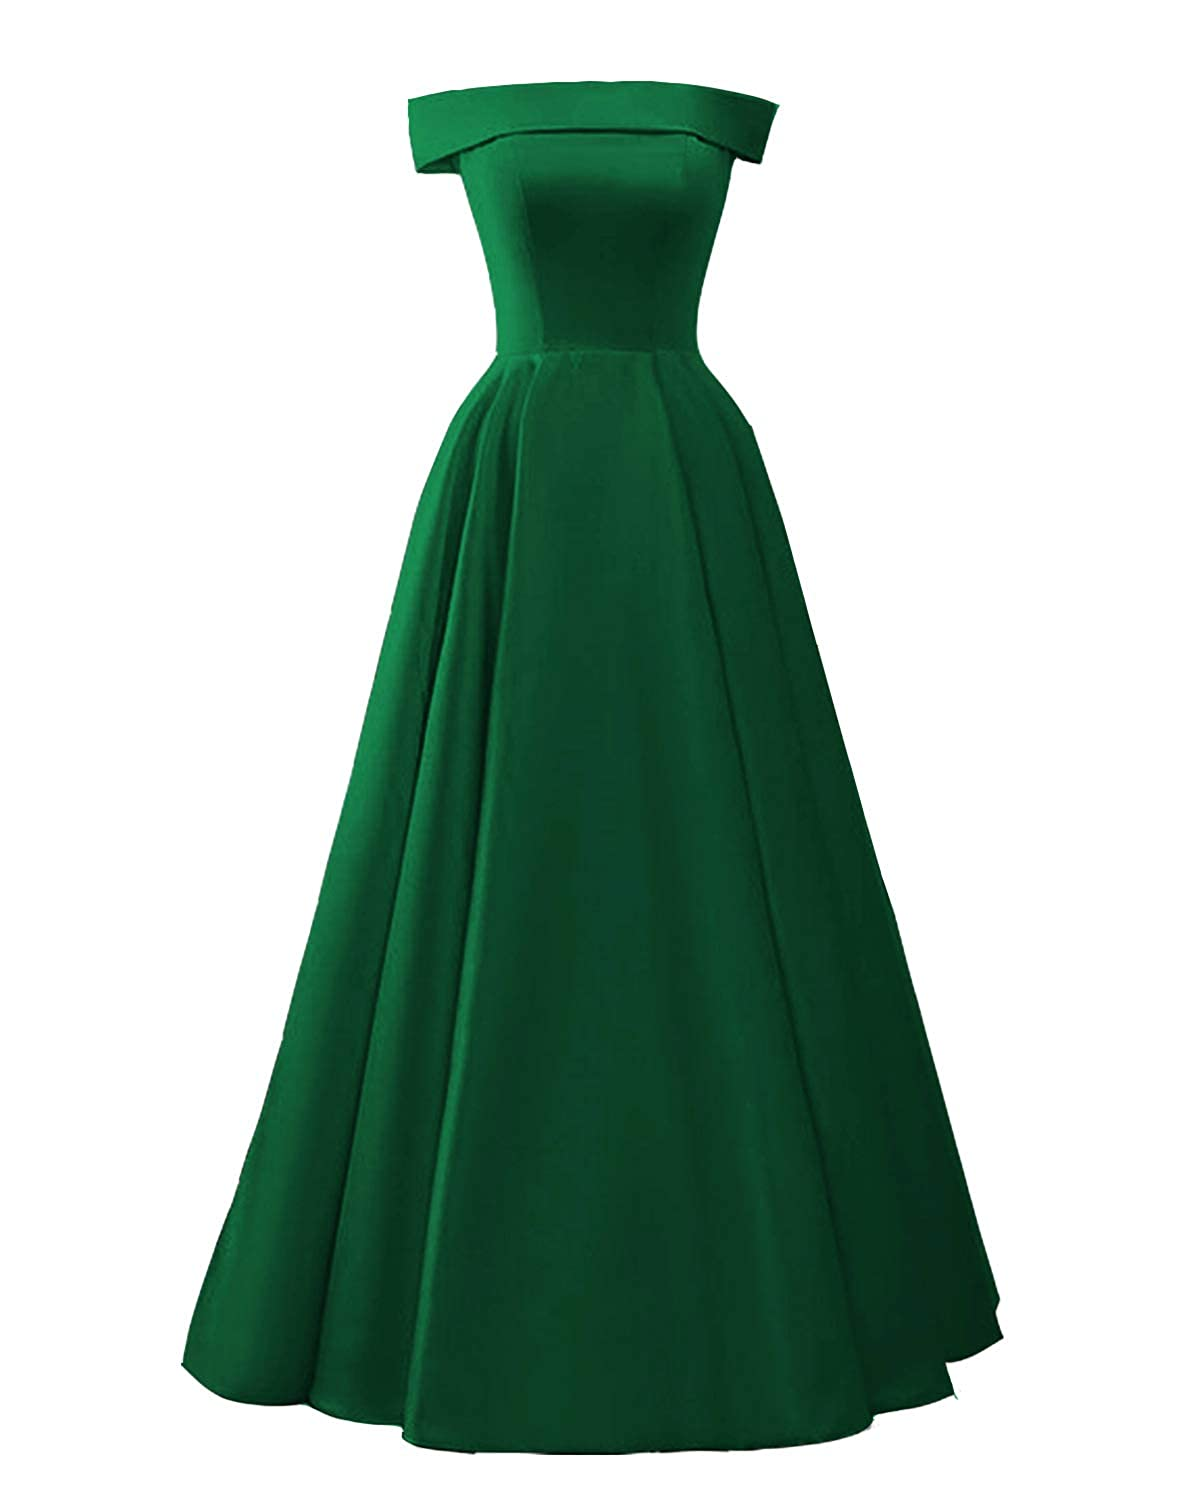 Emerald Green CCBubble Womens Long Satin Prom Dresses Off Shoulder Formal Evening Wedding Party Dress